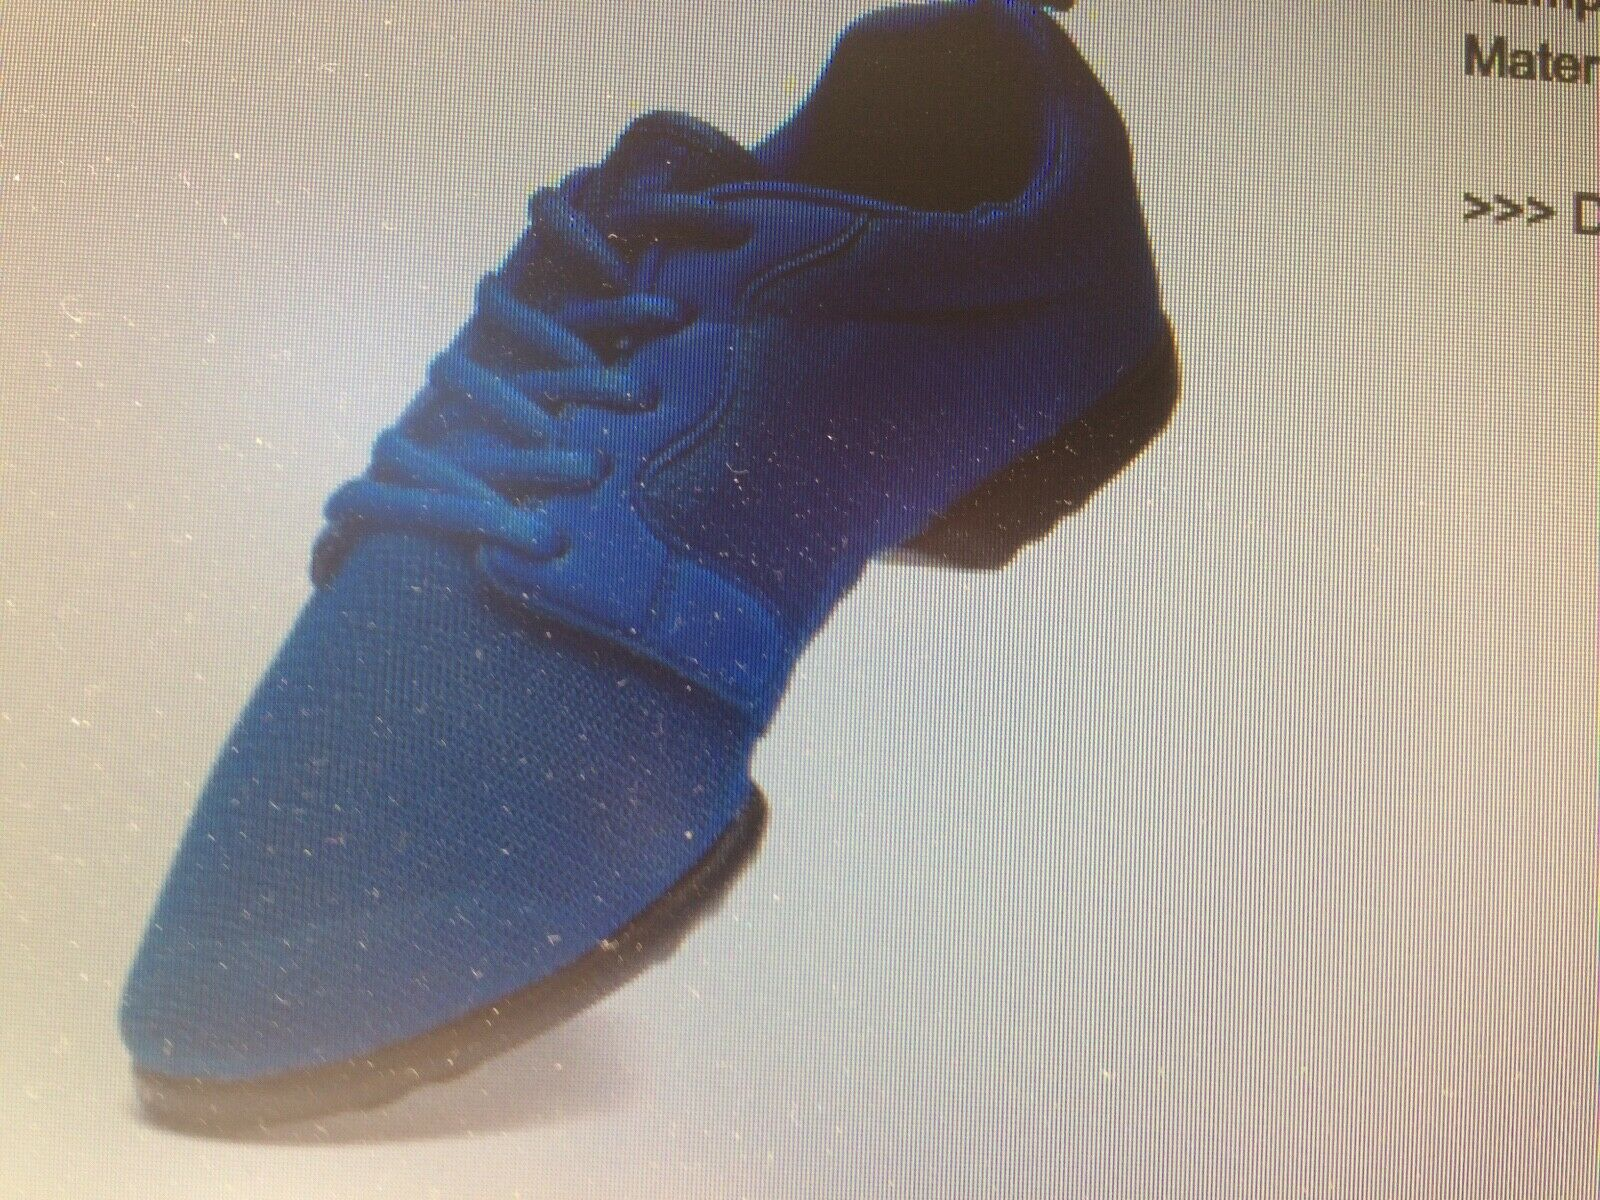 Rumpf 1510 MOJO Dance Tanz Turnschuhe Hip Hop Trainings Trainings Trainings Schuh Sport 35,5-47 3c036e